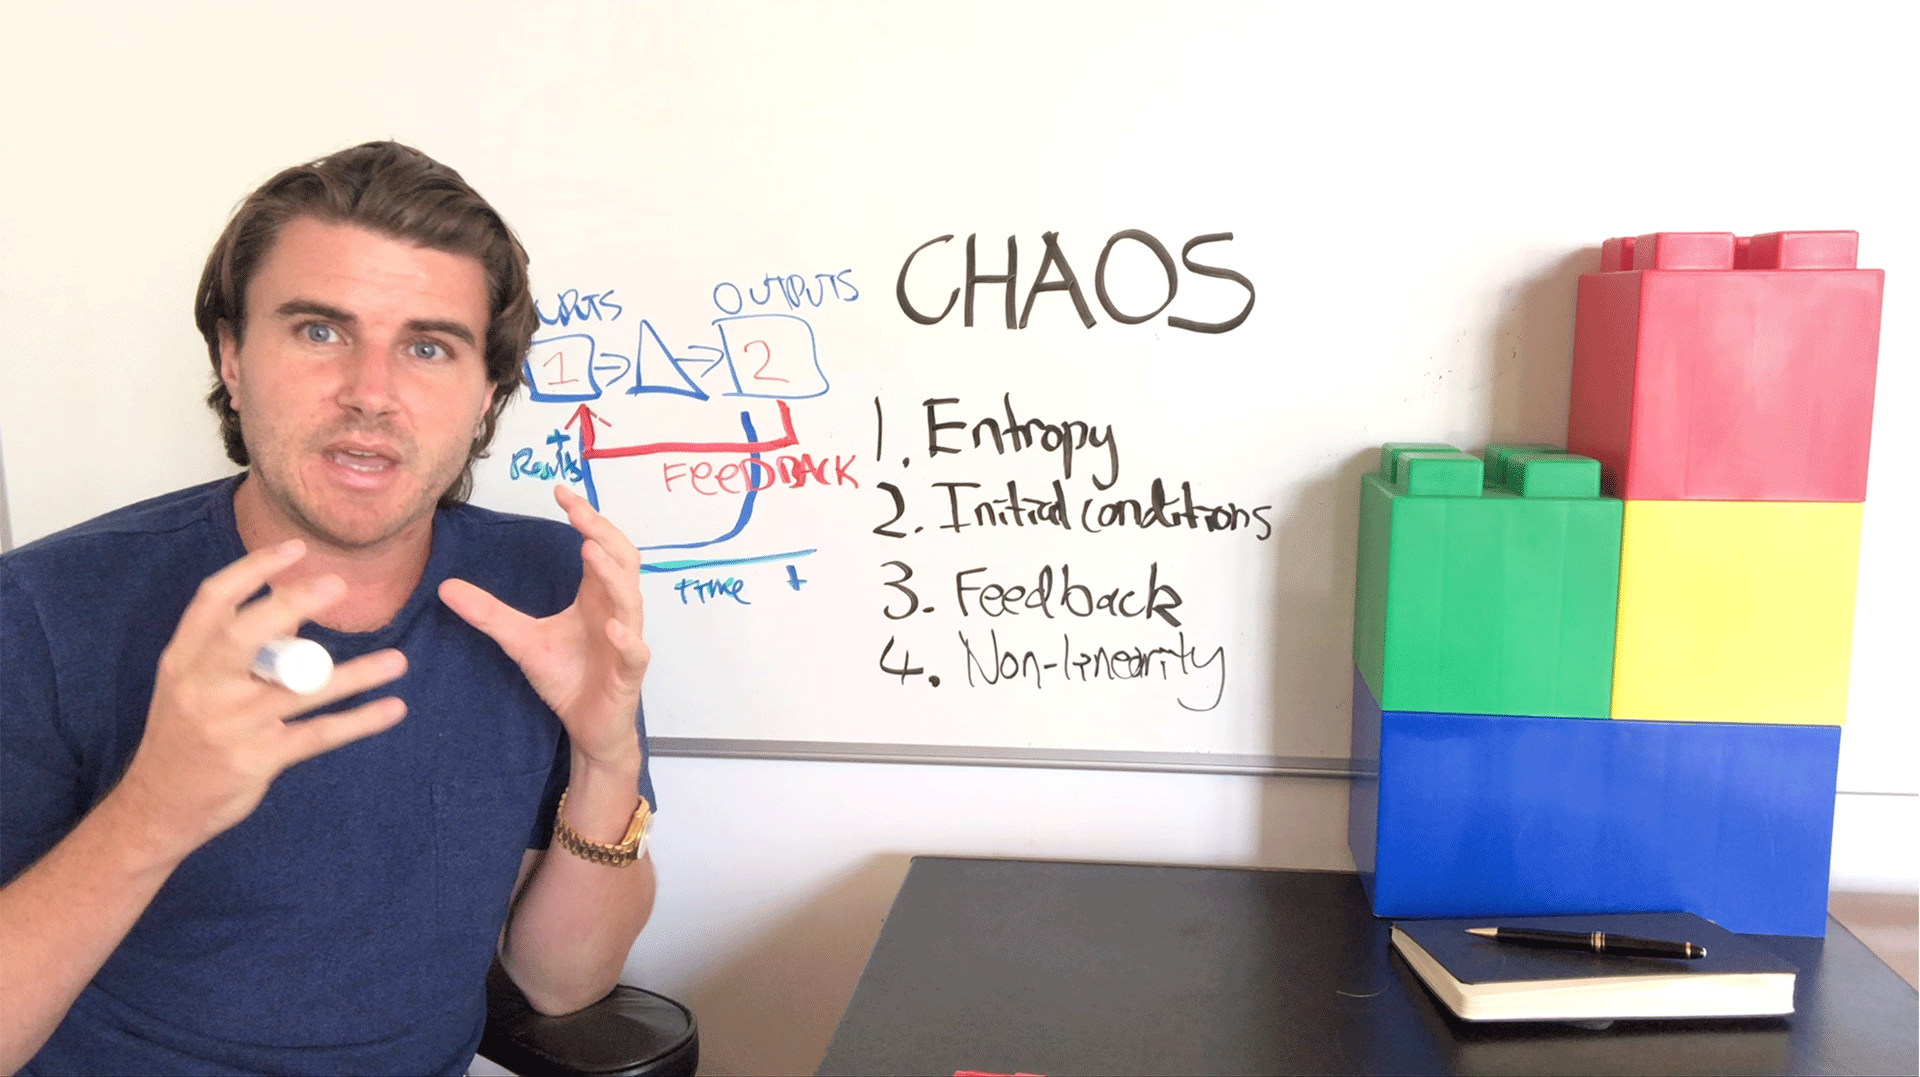 How To Play With Chaos (4 Laws)